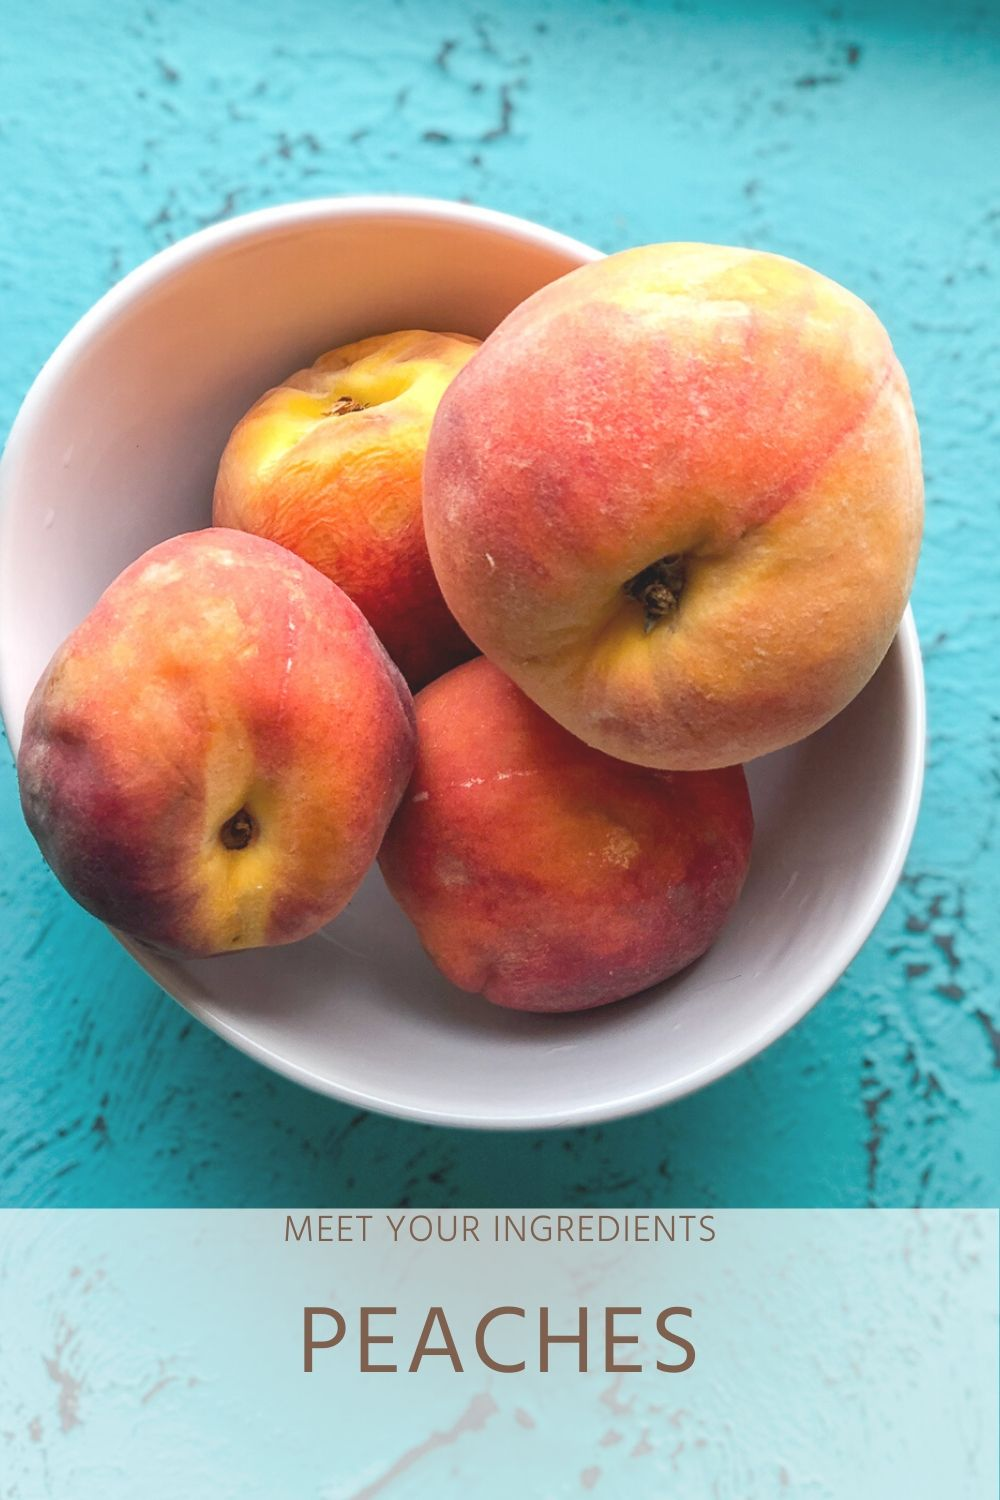 Meet Your Ingredients: Peaches